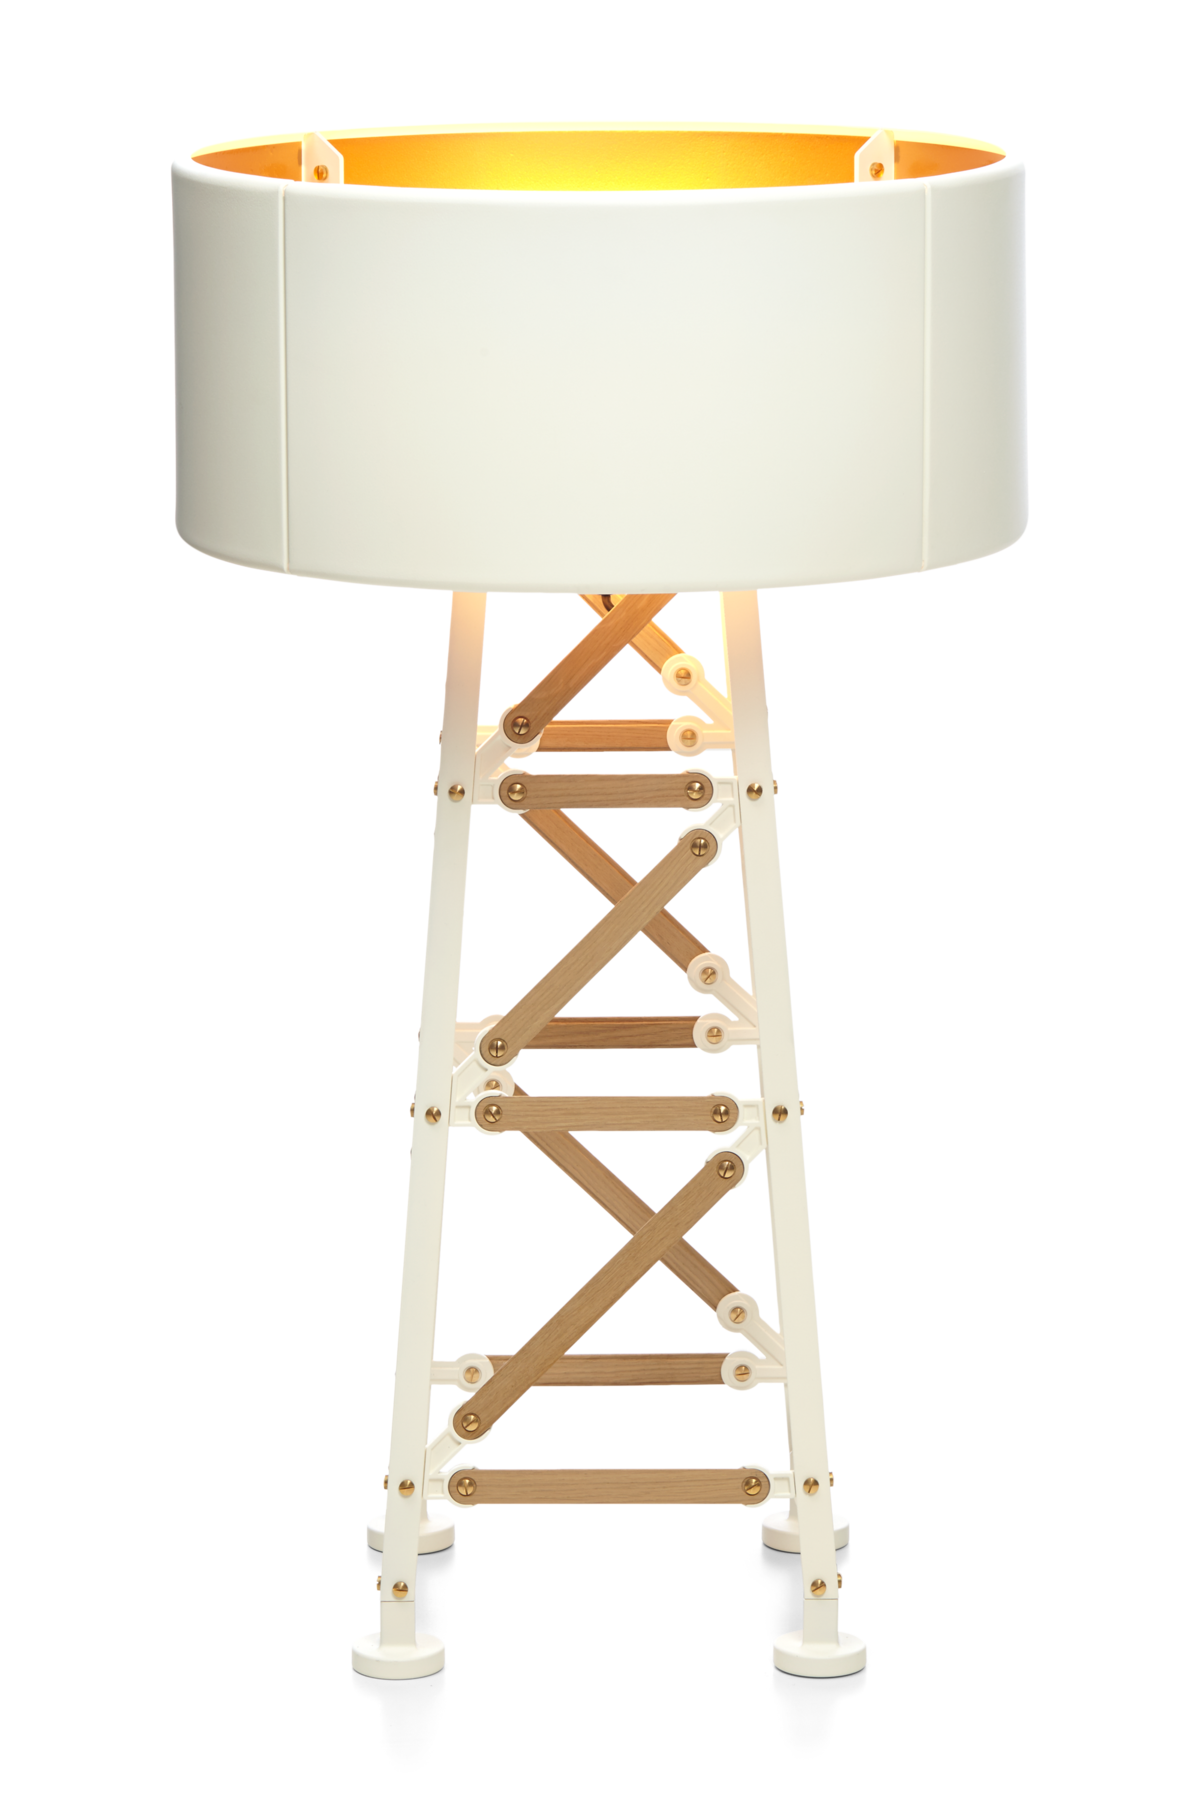 Frontview of The Moooi Construction Lamp in the small size and in the colour white.